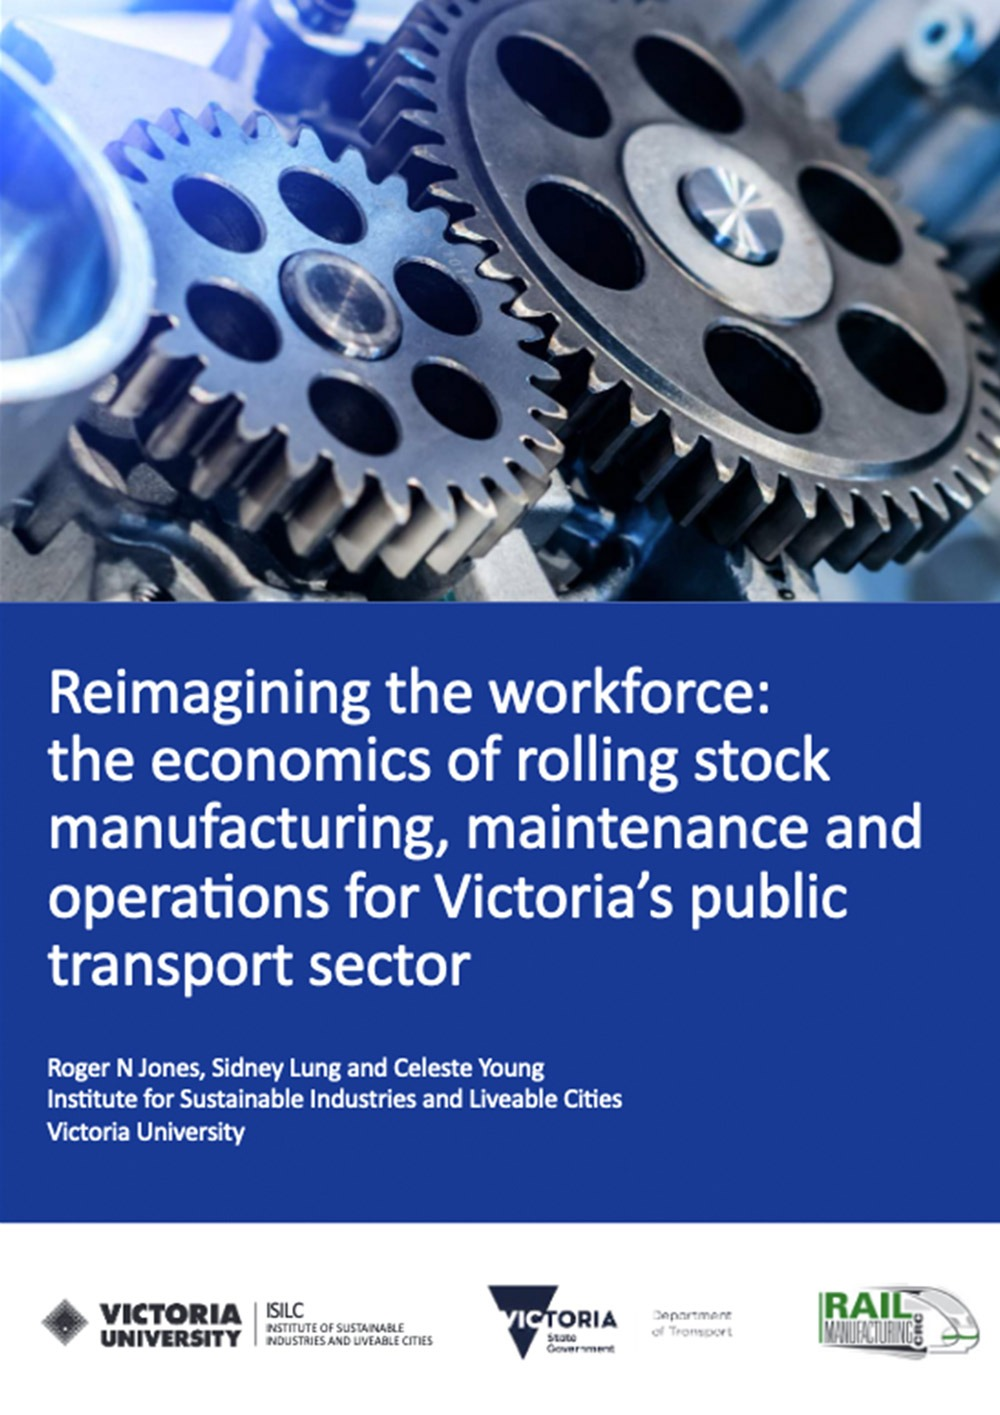 The economics of rolling stock manufacturing, maintenance and operations for Victoria's public transport sector